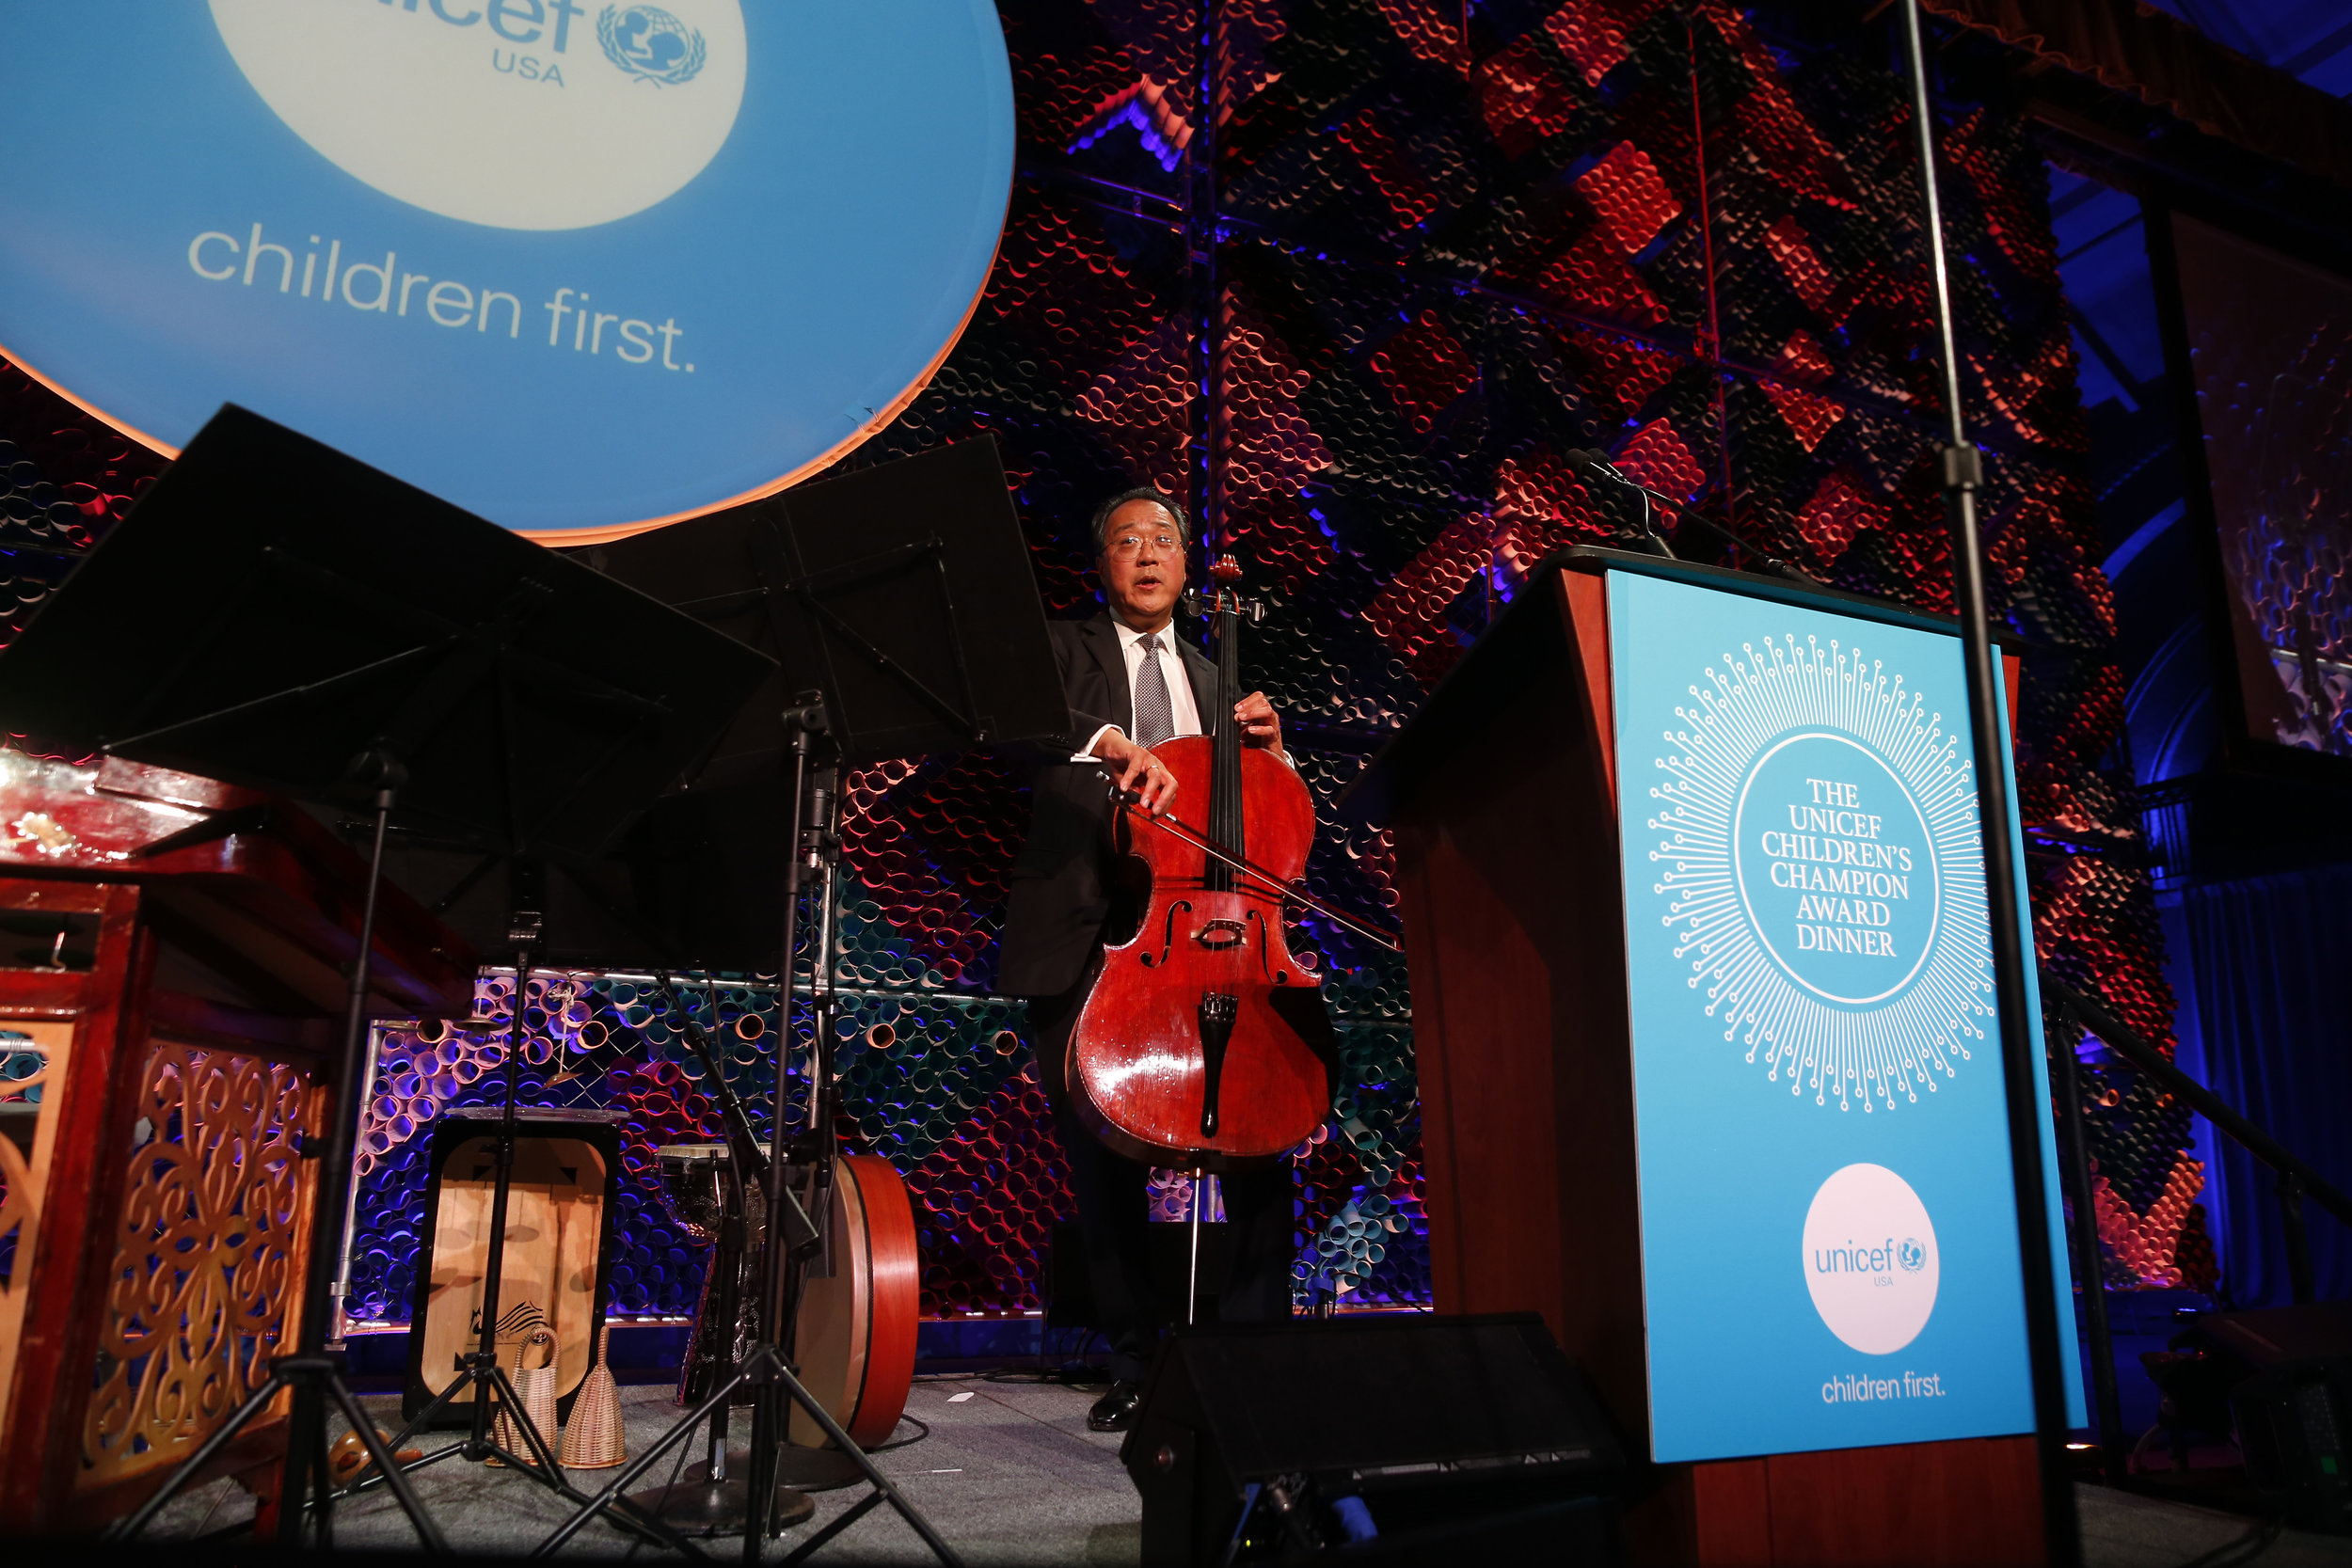 Yo-Yo Ma leads the audience in song while accepting the 2017 UNICEF Children's Champion Award.  © Scott Eisen/Getty Images for UNICEF USA